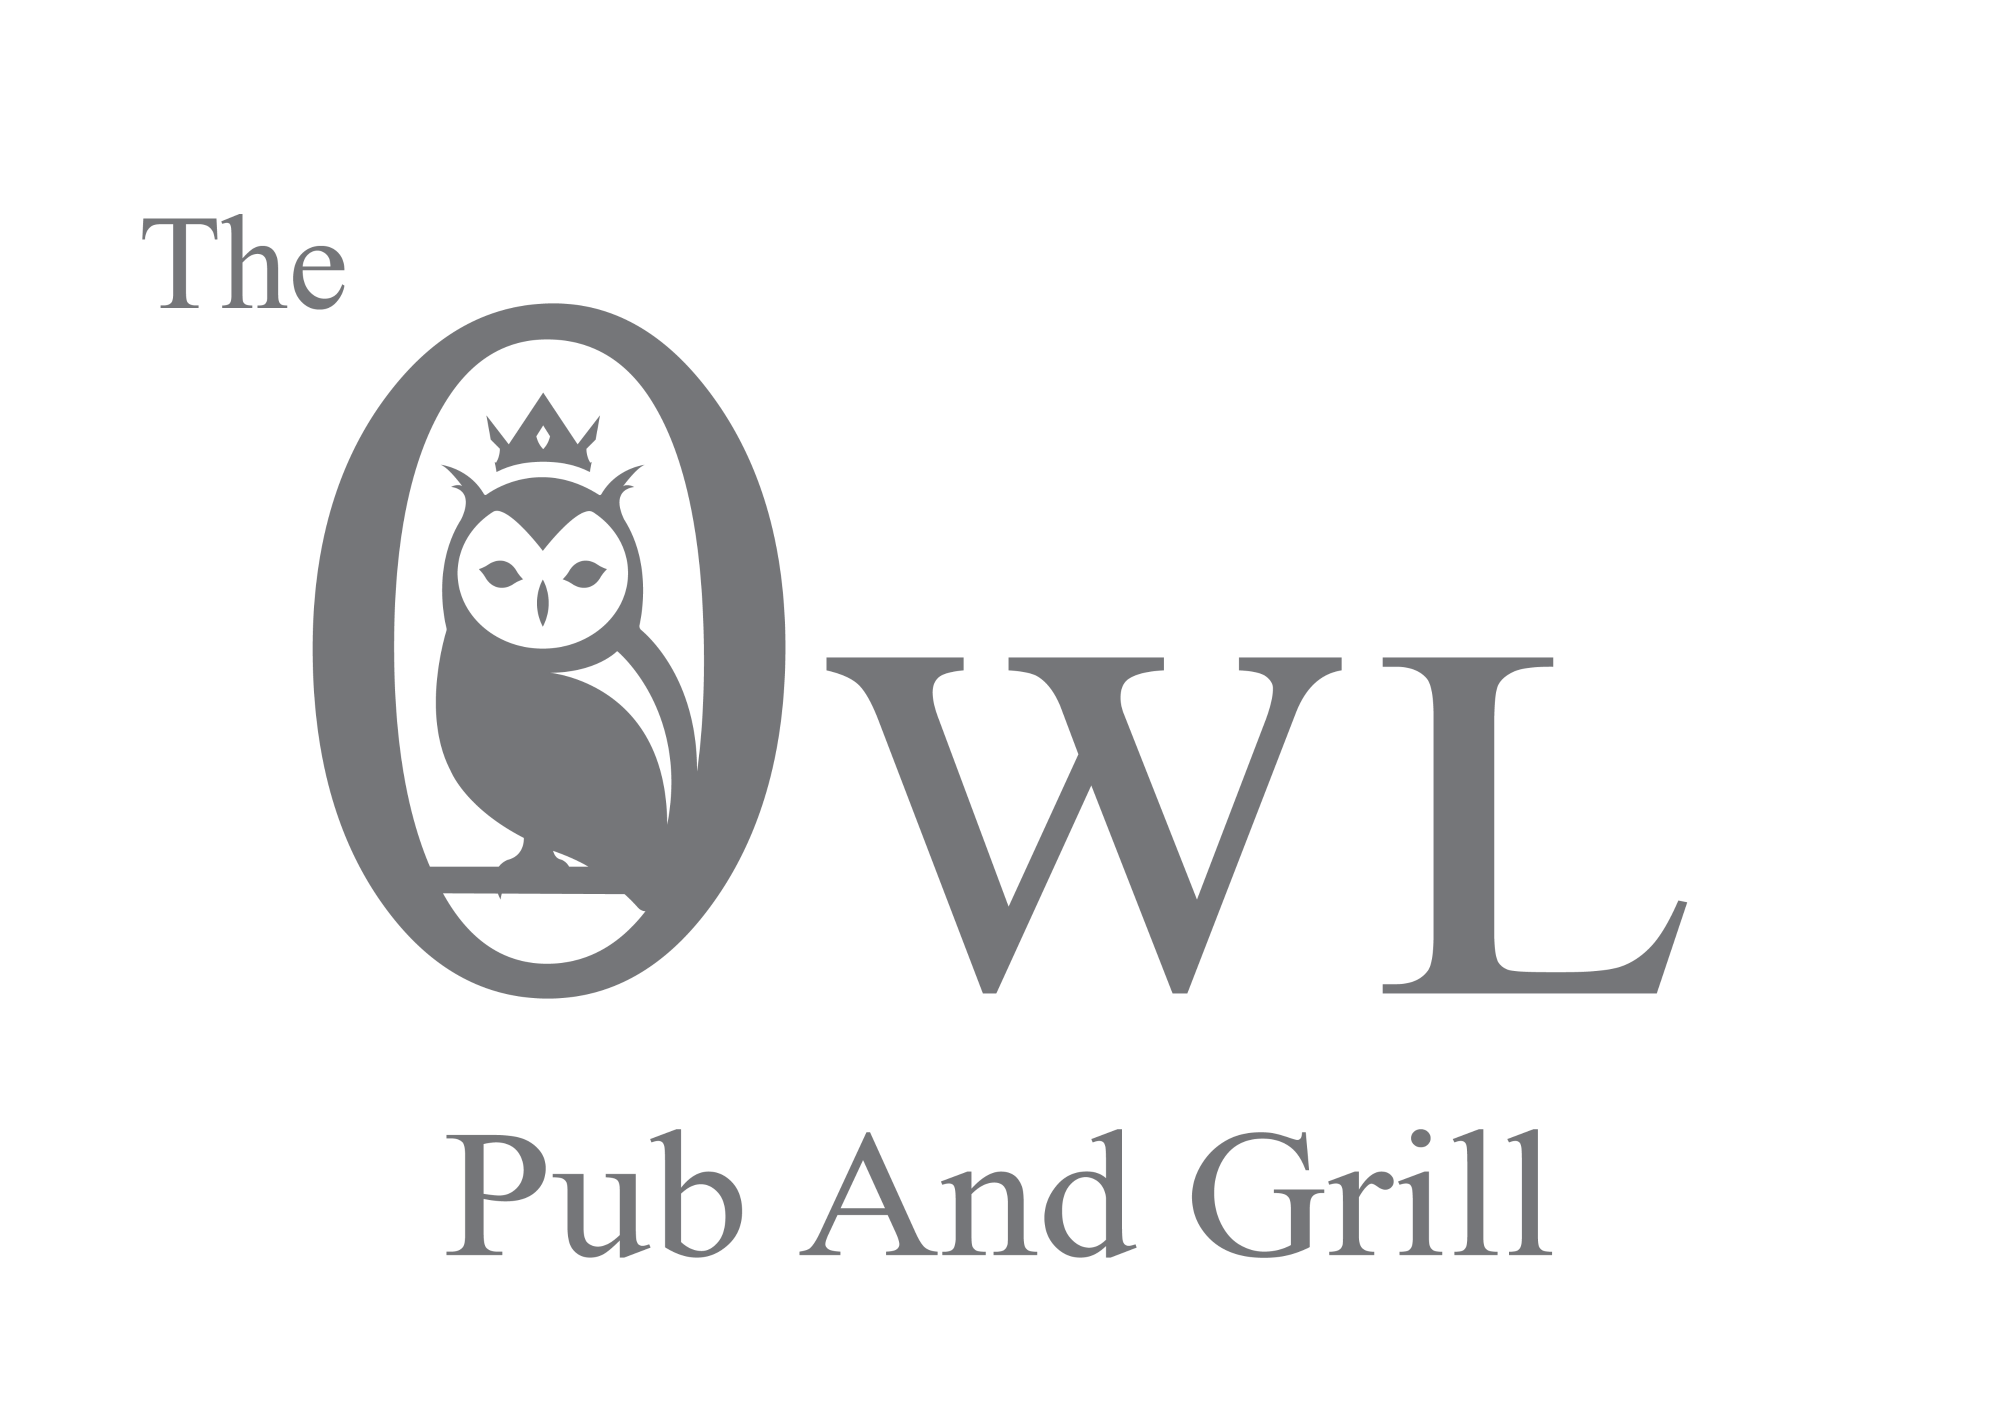 The Owl Camber